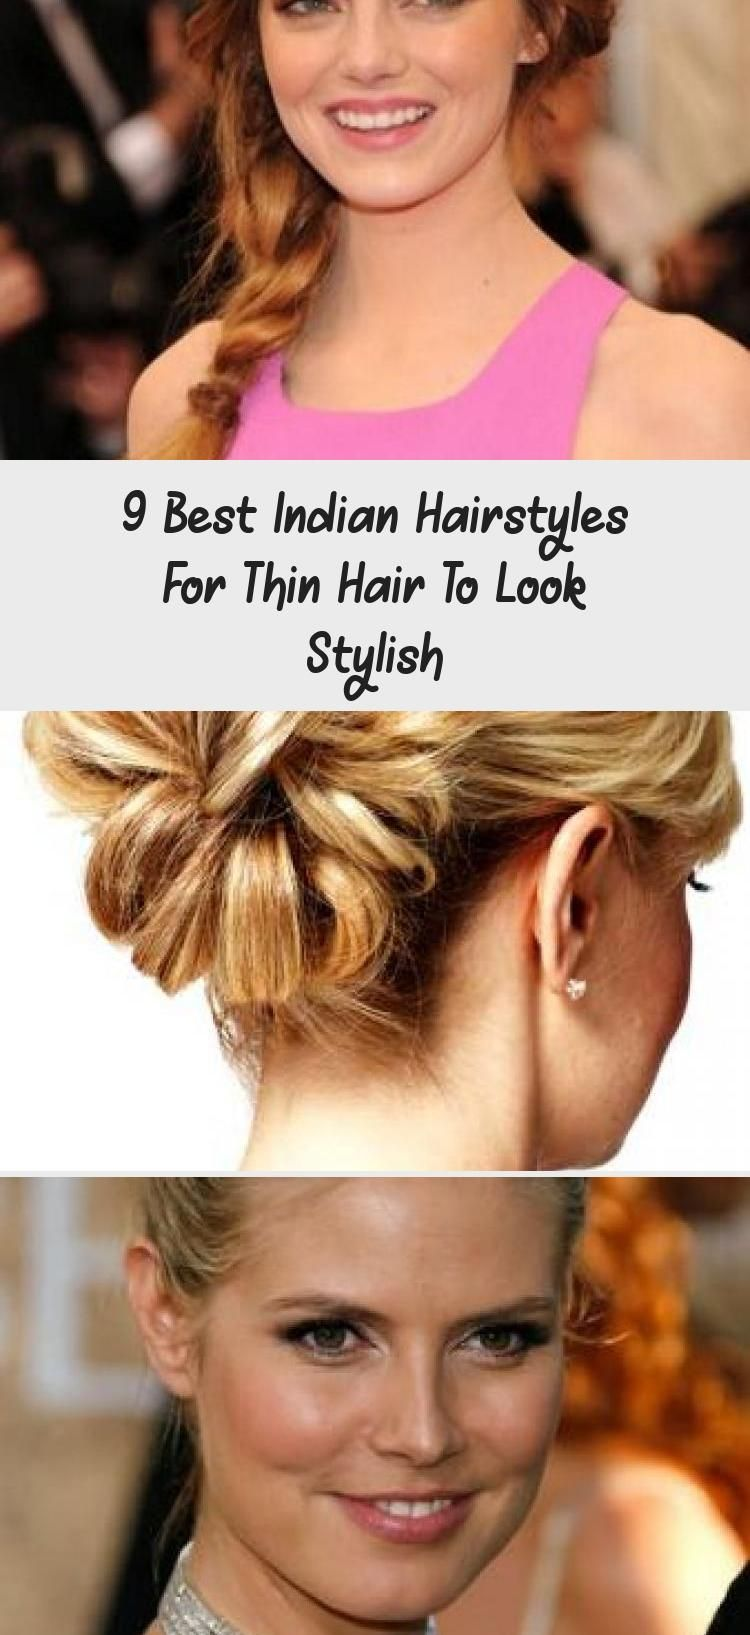 9 best indian hairstyles for thin hair to look stylish